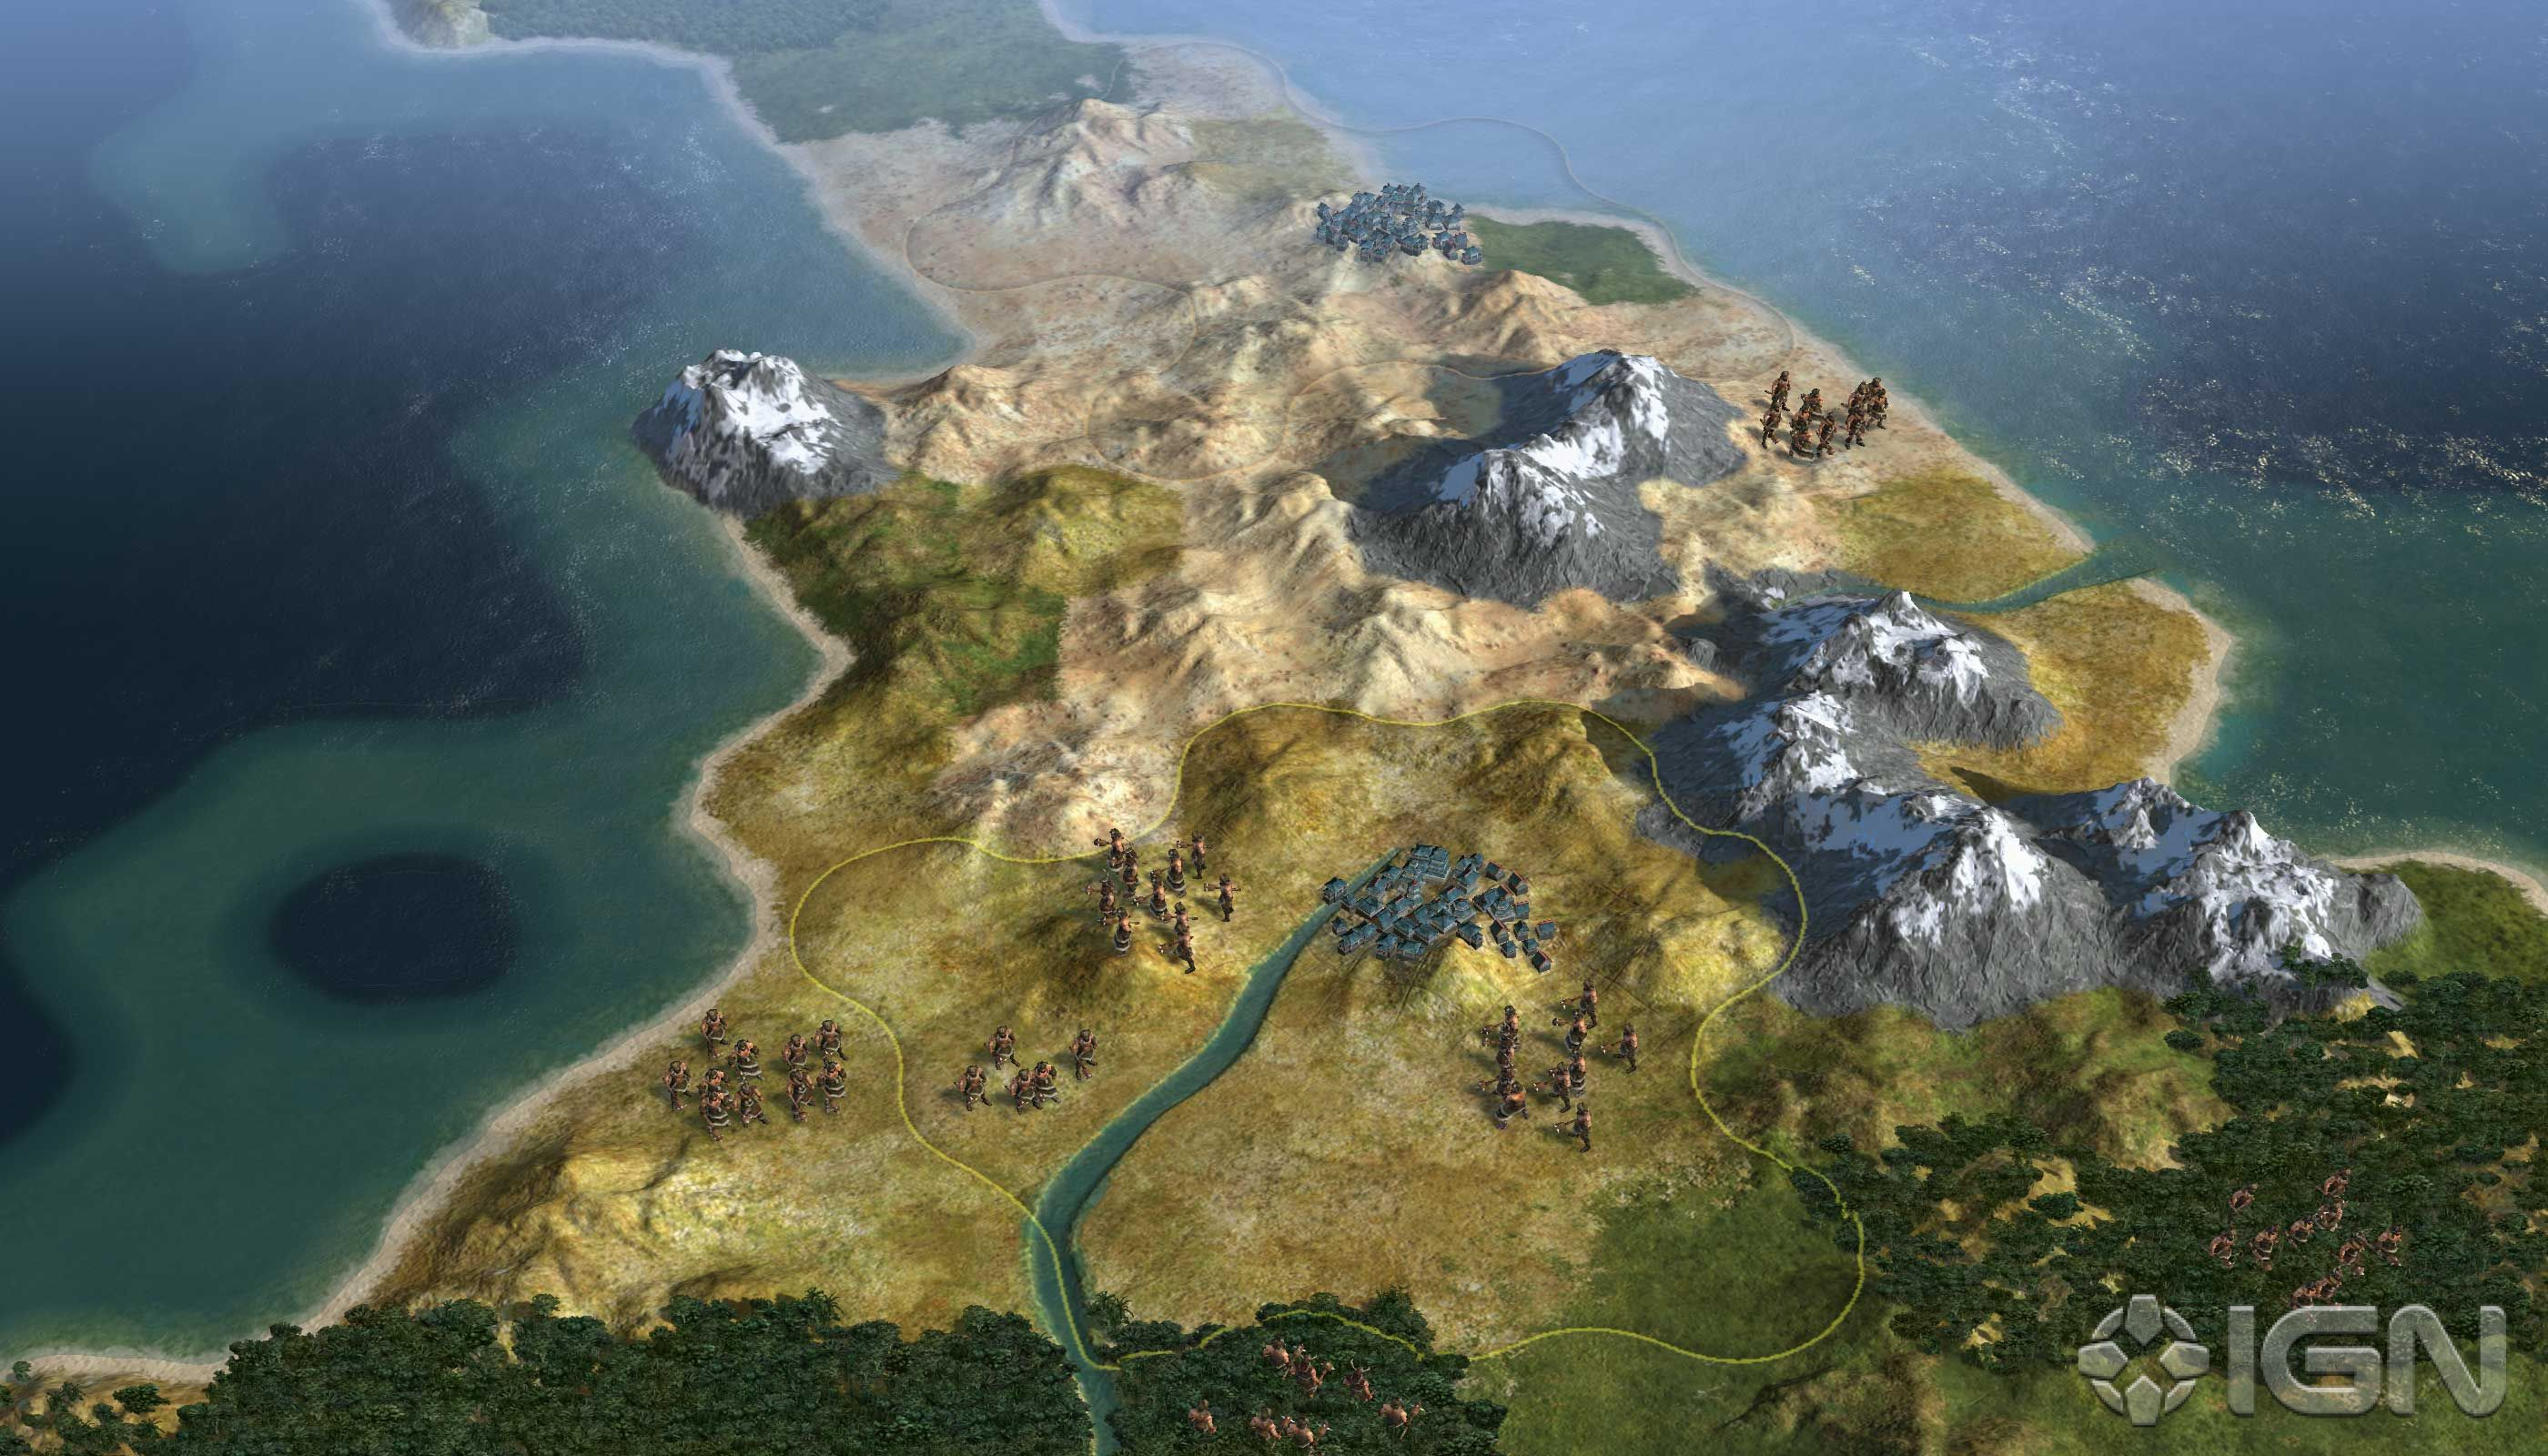 Civ 5 mountains